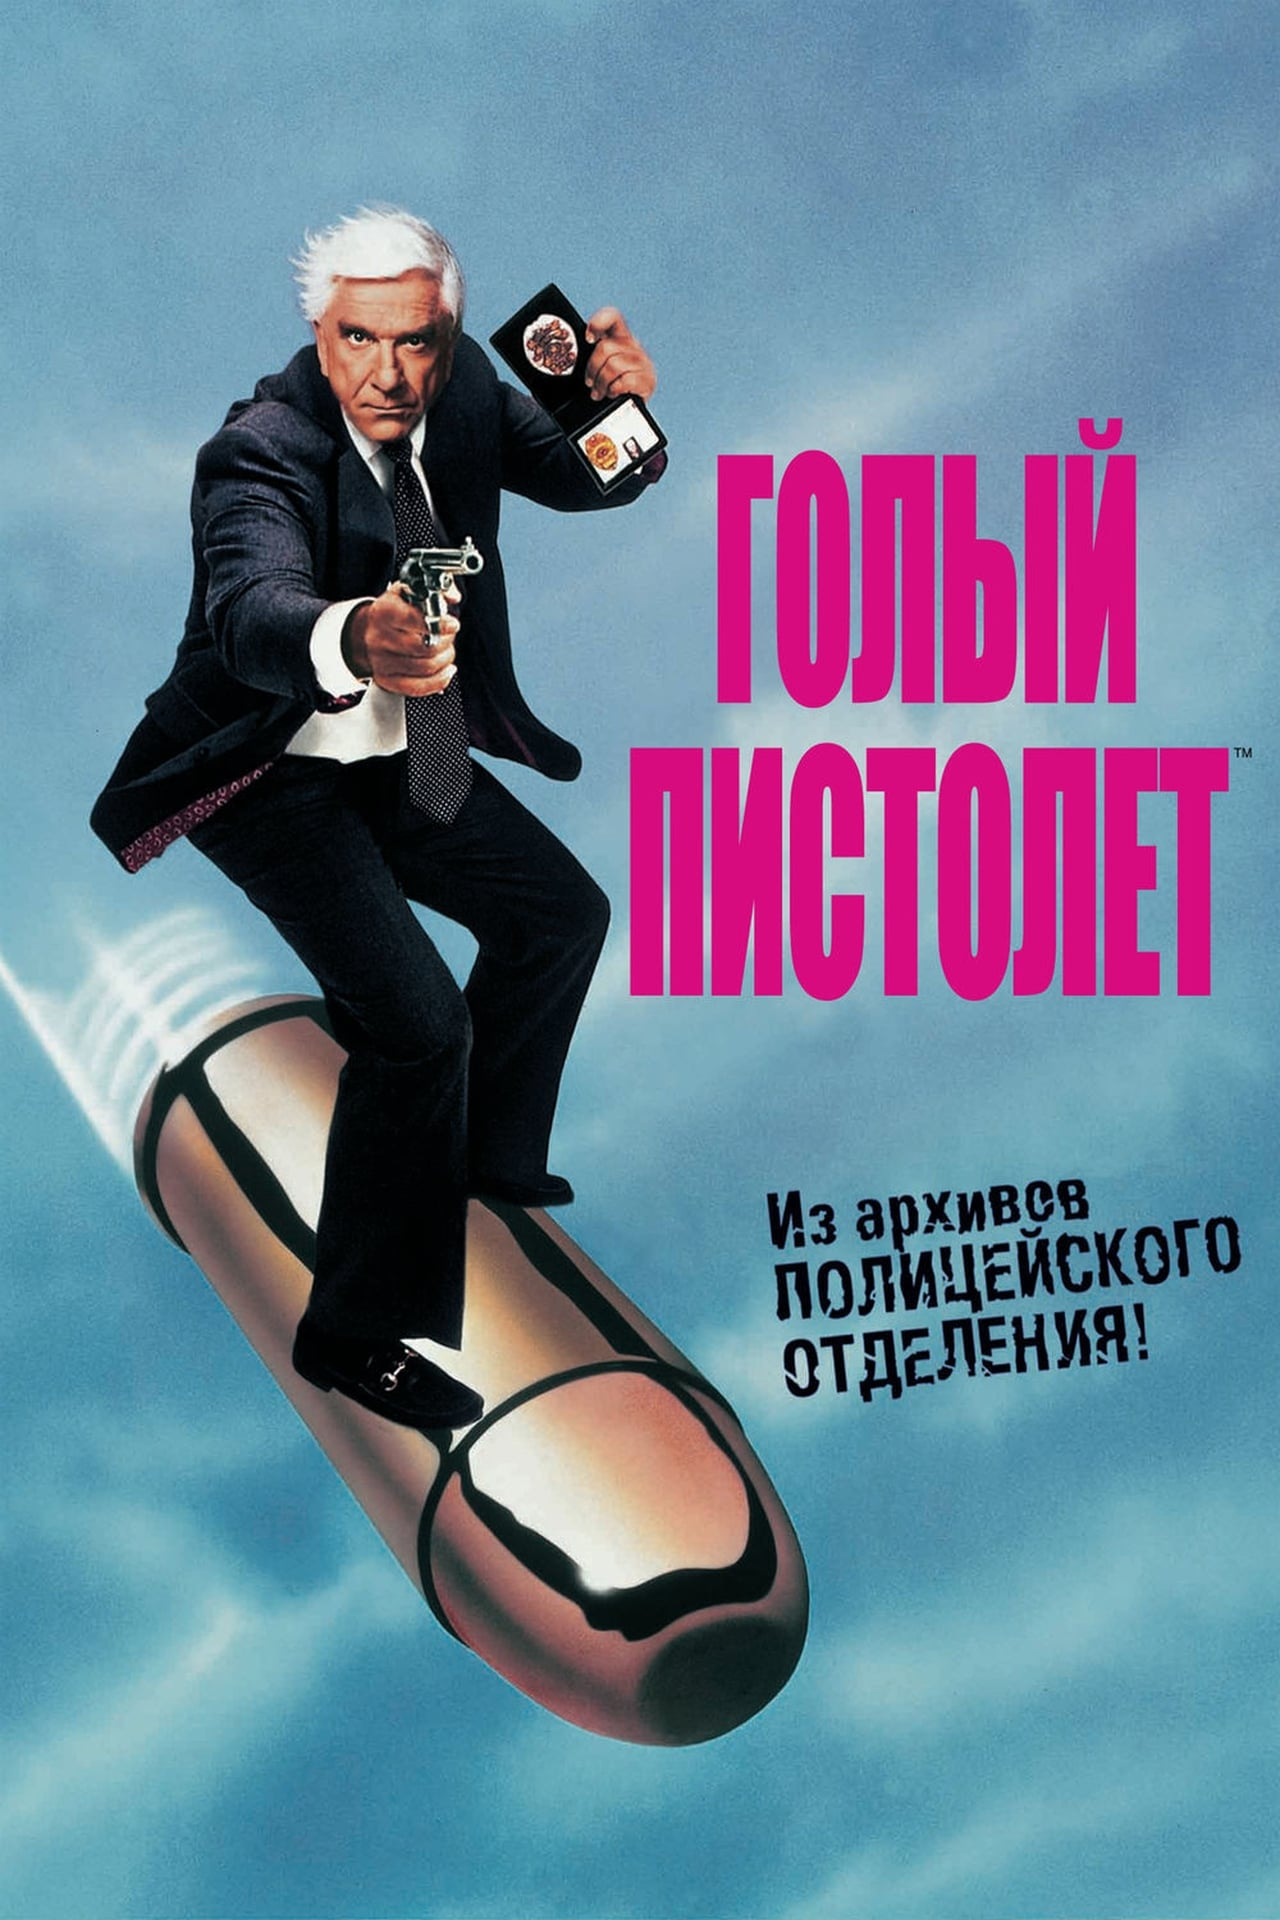 Free Watch The Naked Gun: From the Files of Police Squad